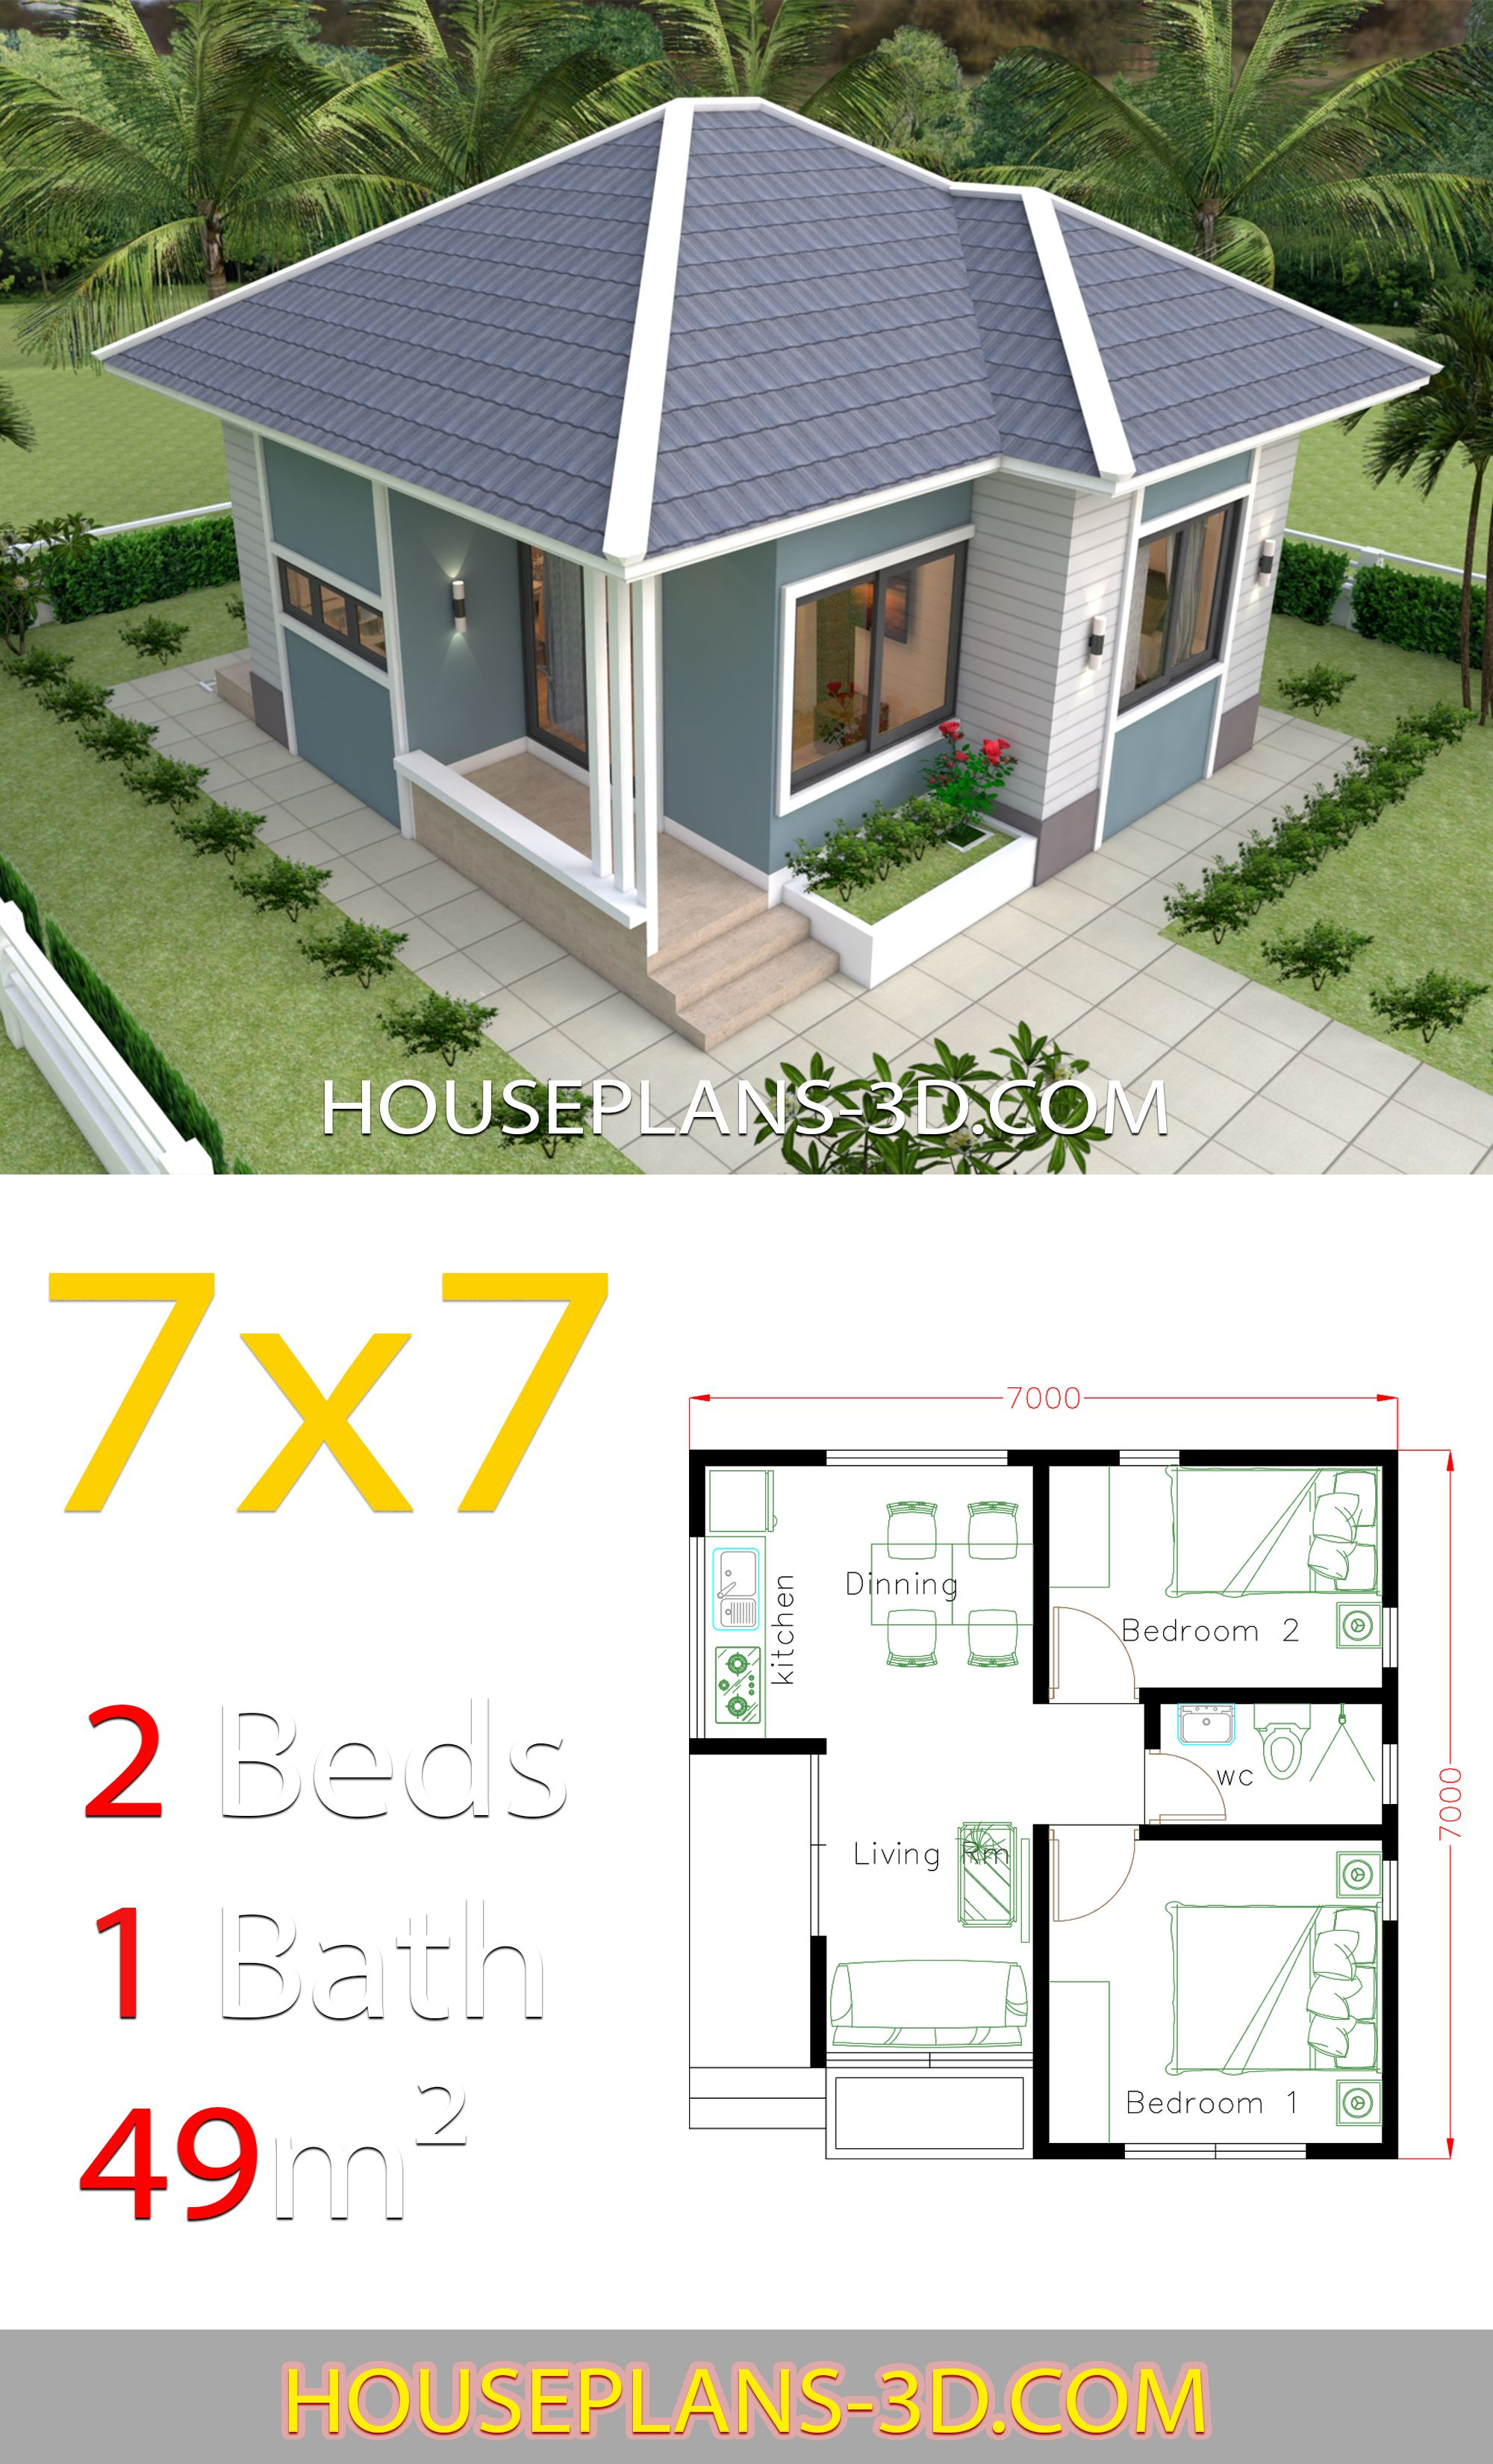 House Design Plans 7x7 With 2 Bedrooms House Plans 3d In 2020 Small House Design Plans House Plans Tiny House Design